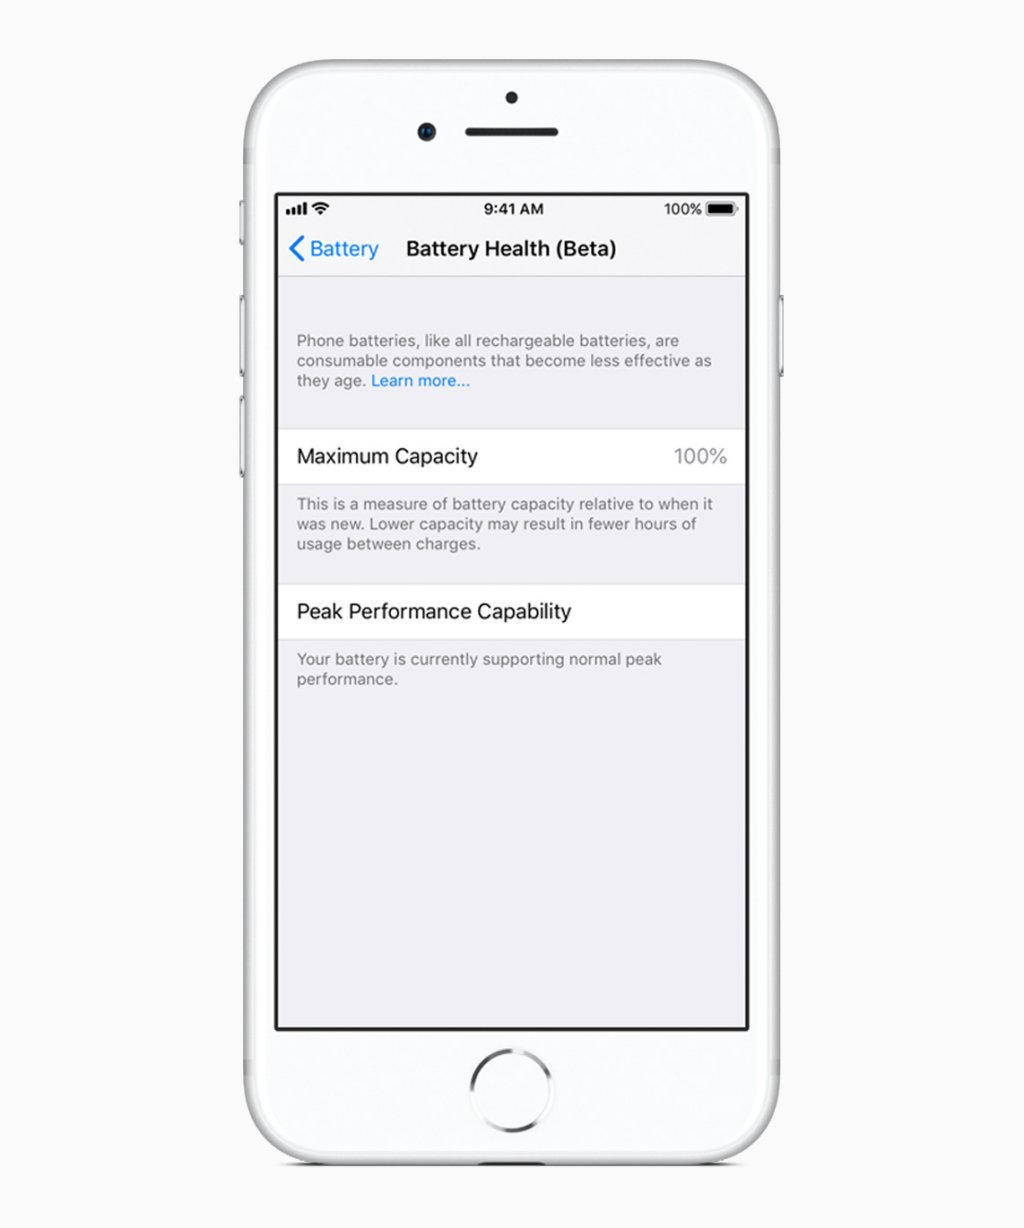 Apple iOS 11 3 tela de integridade da bateria 03292018